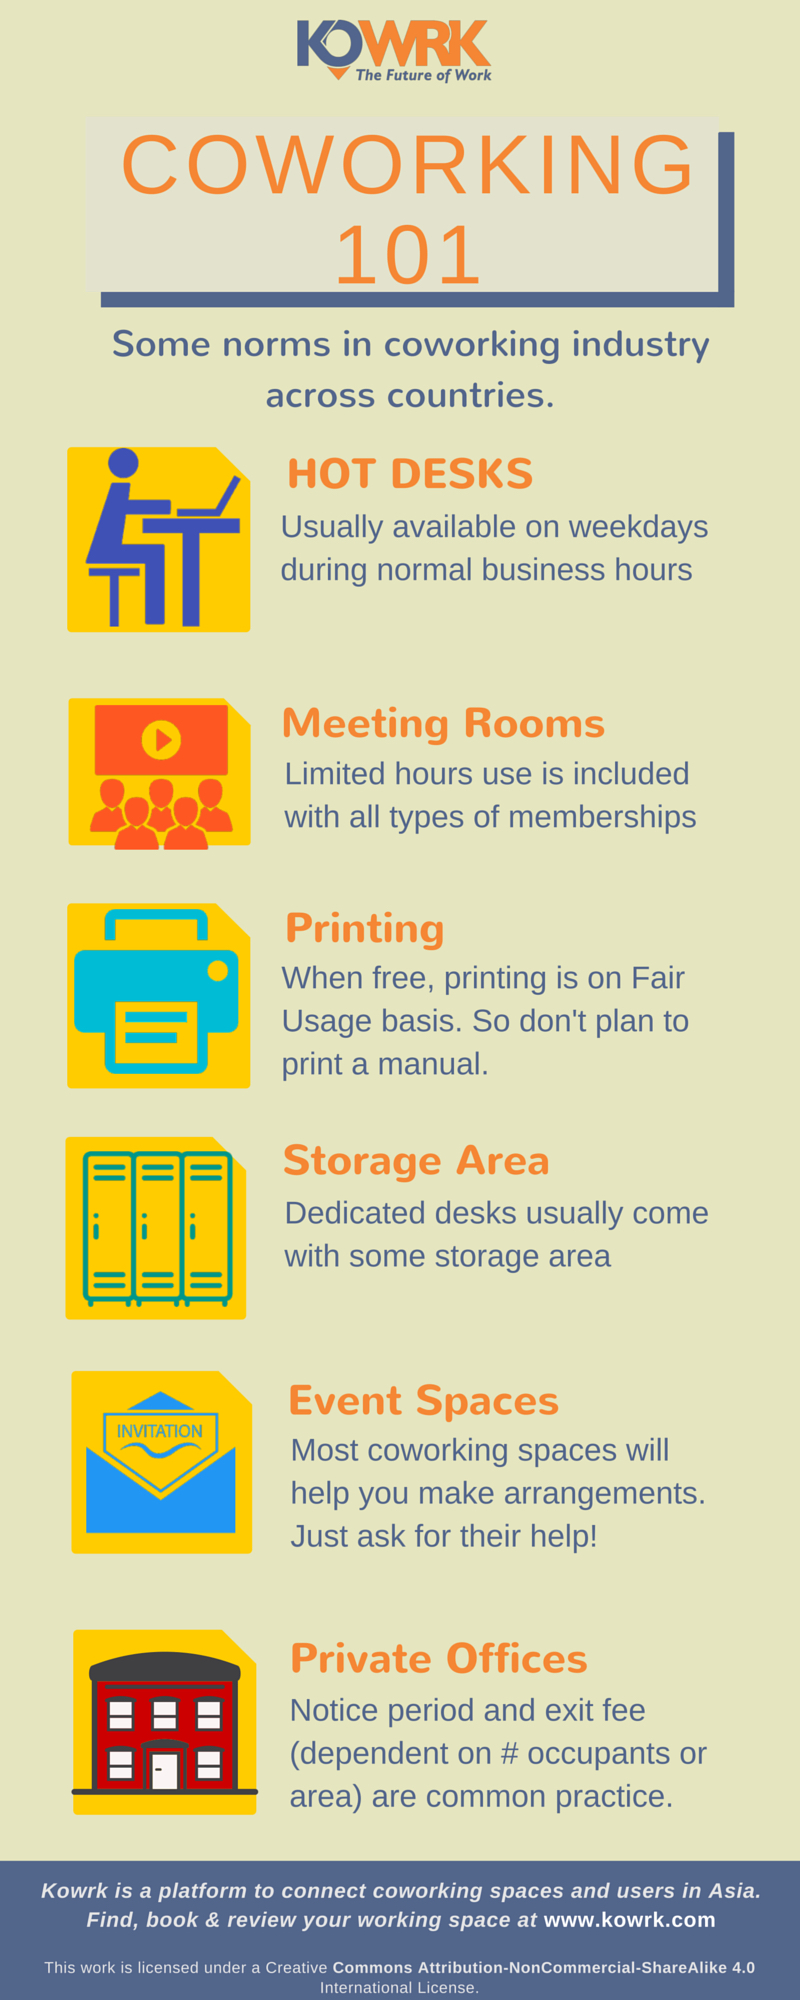 Coworking 101 kowrk infographic